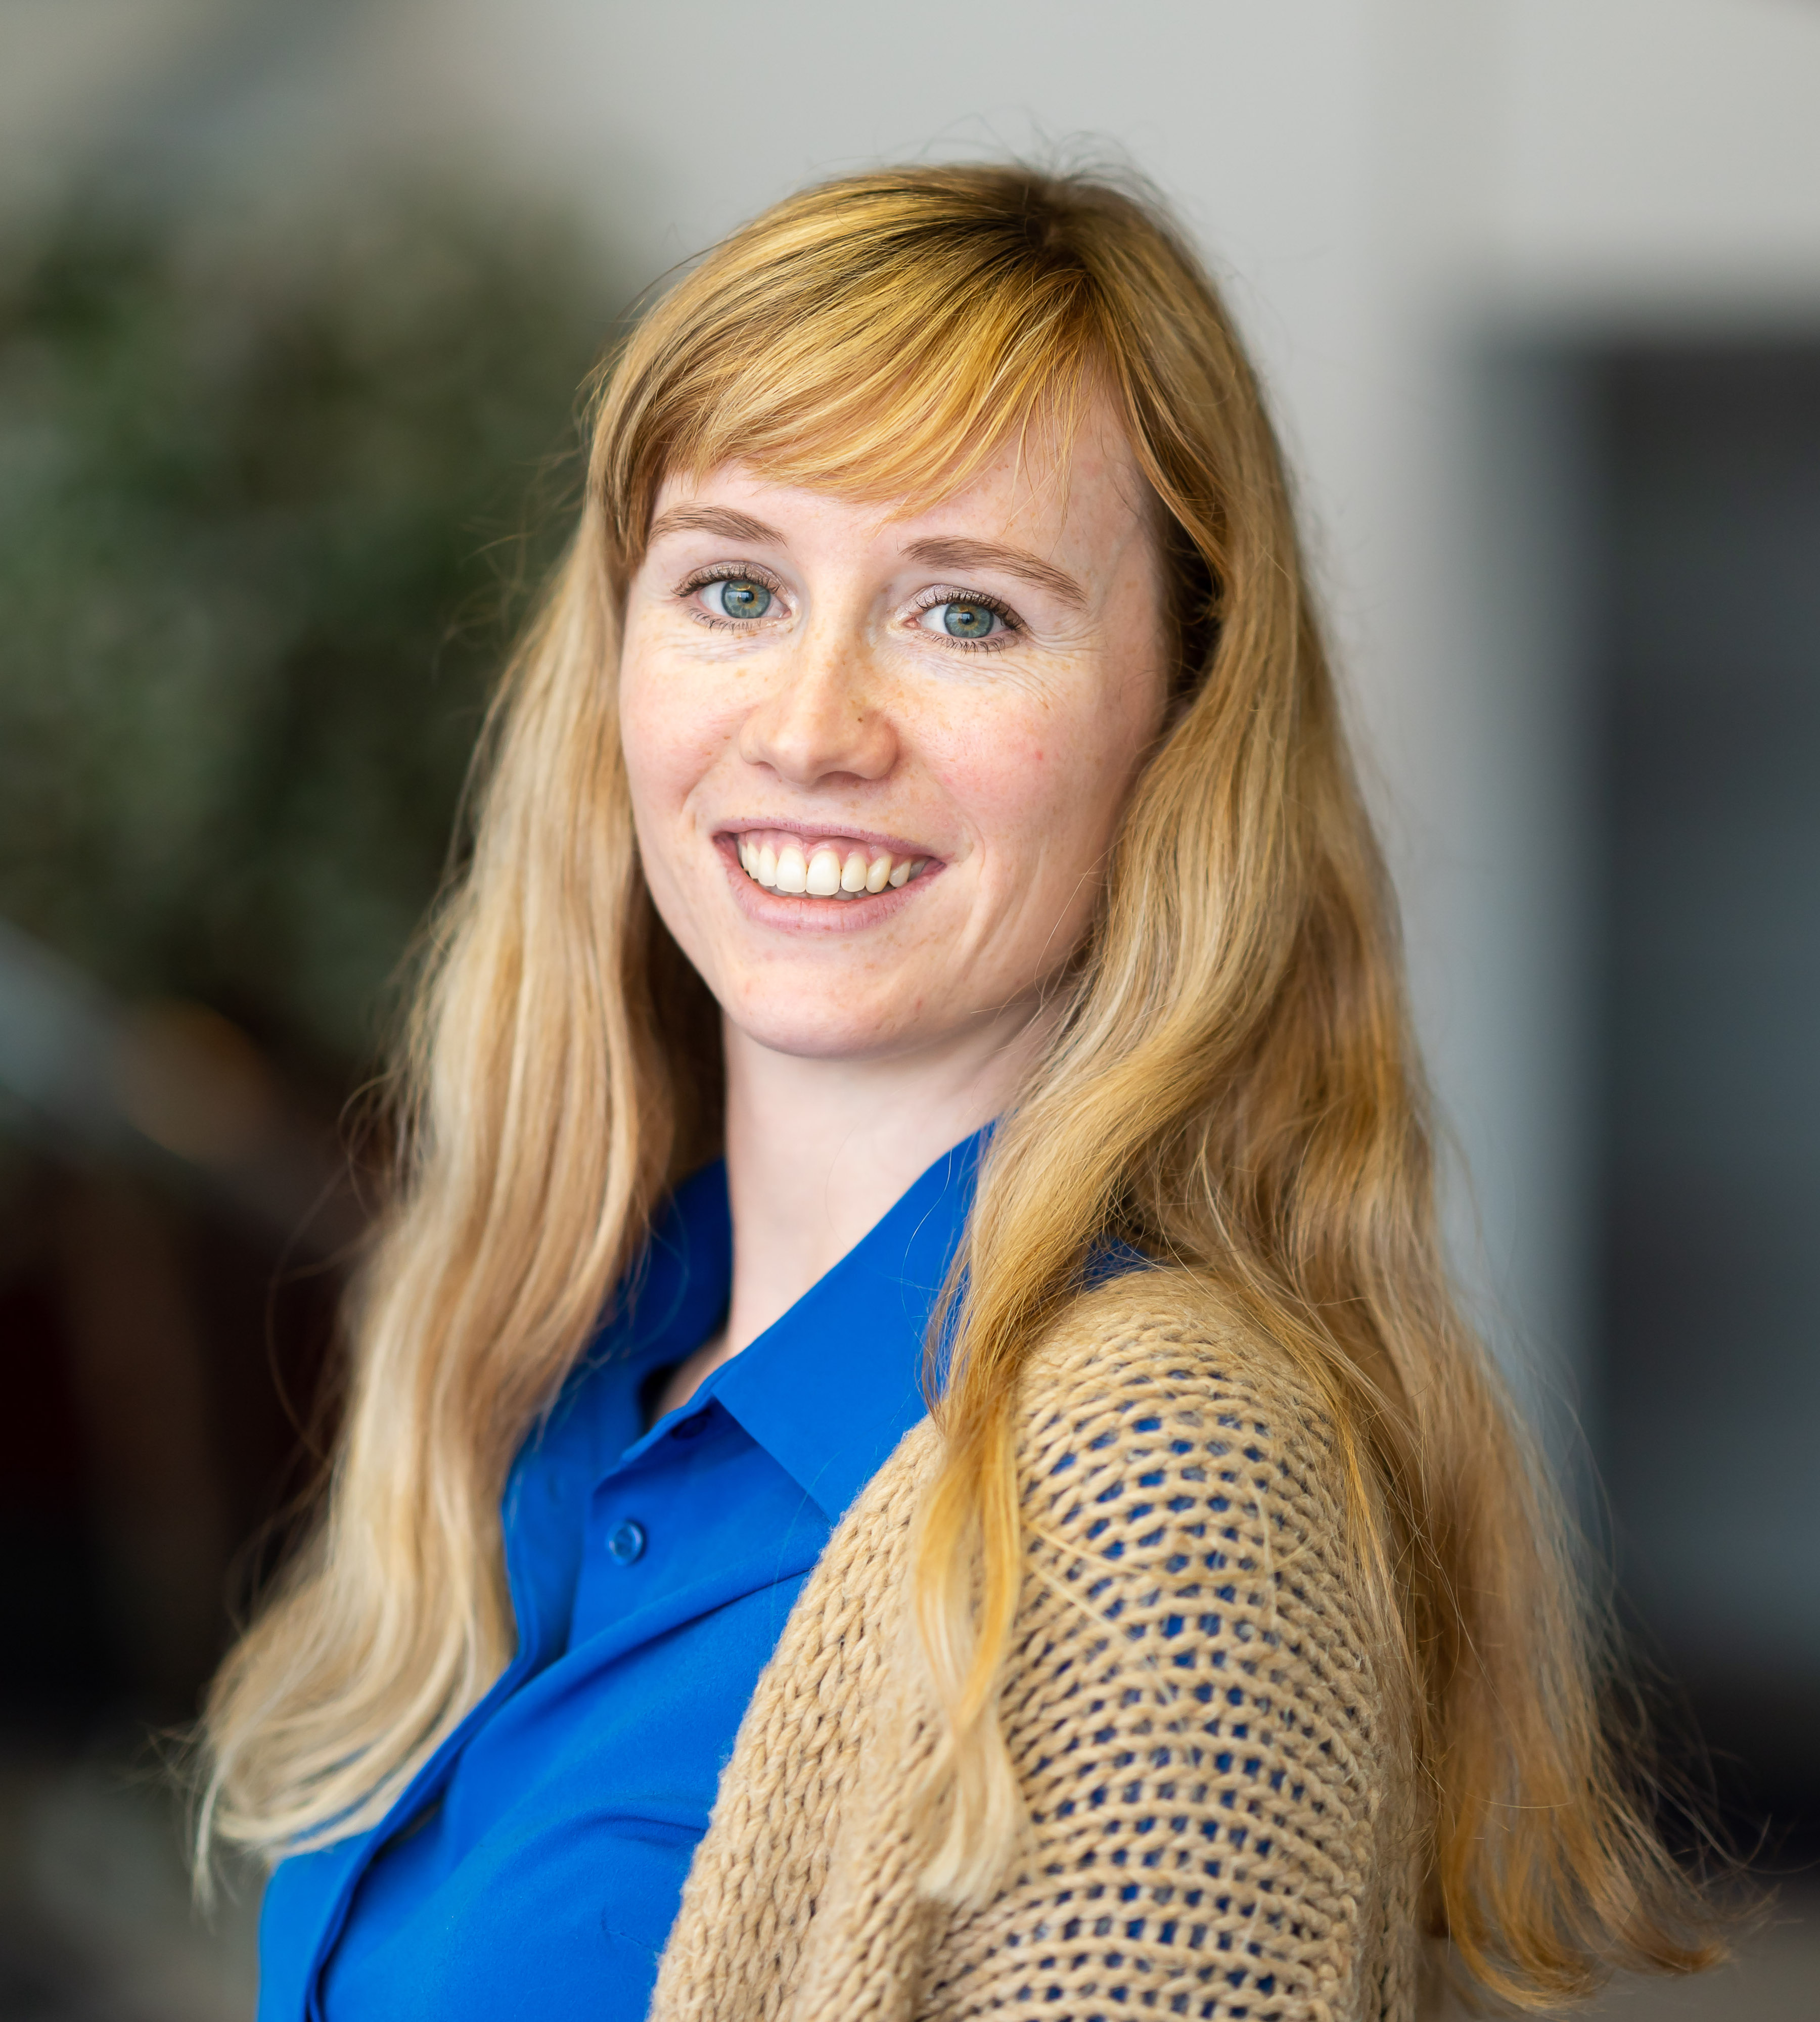 picture of Sofie Melis, founder of soflow, job coach and professional organizer